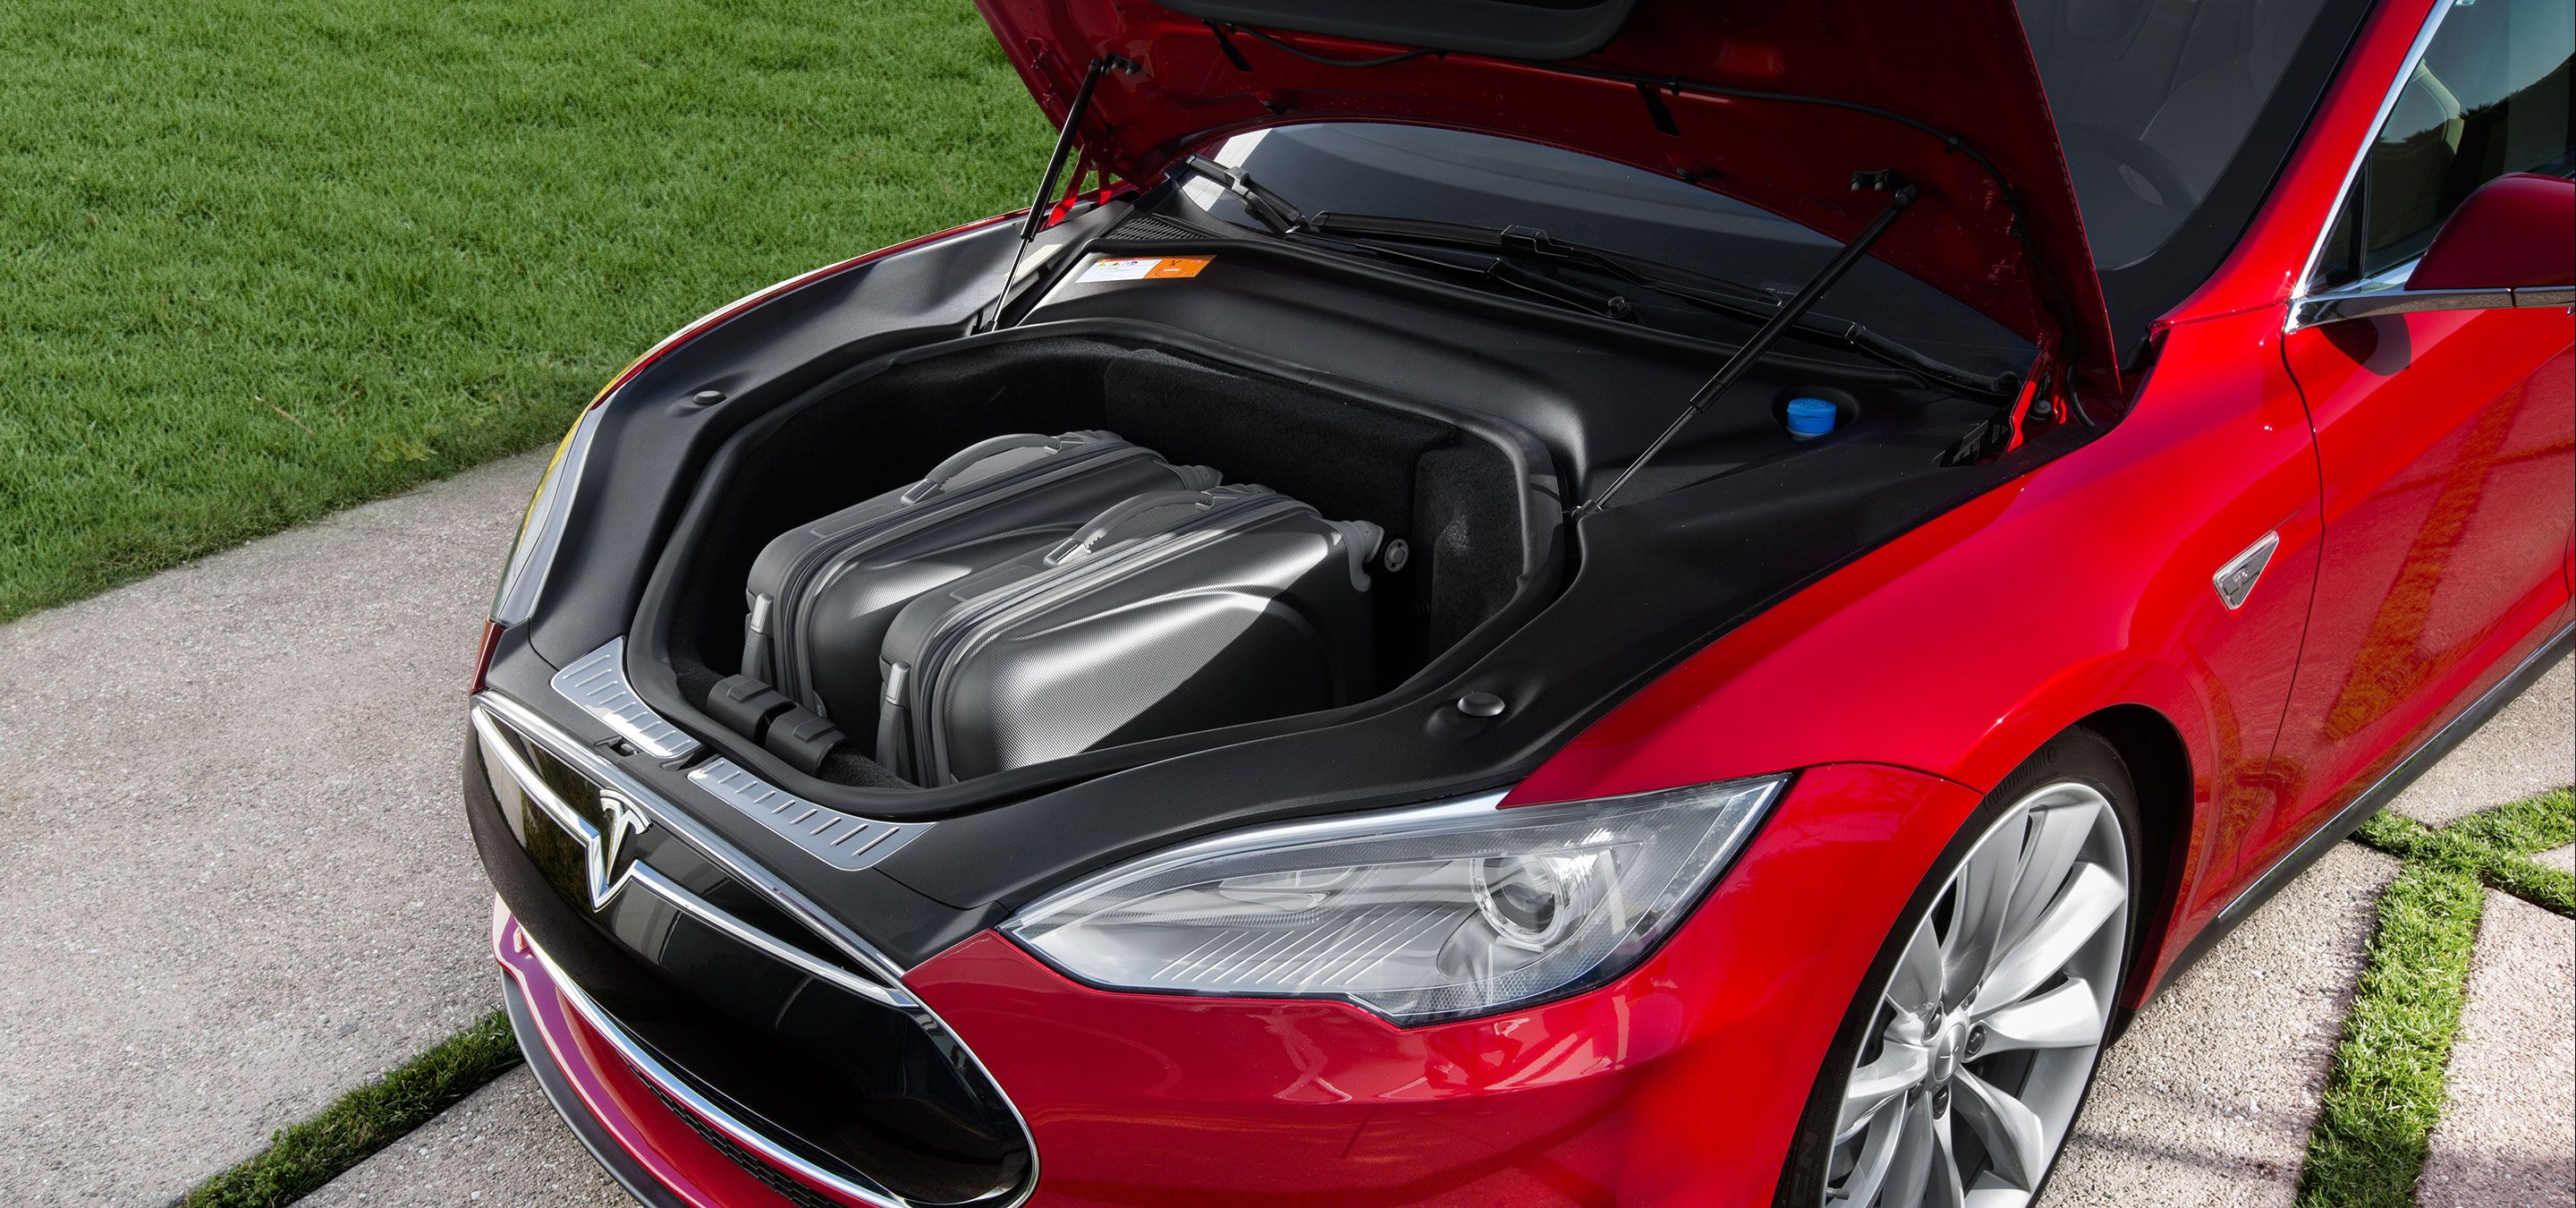 Model S | Tesla Motors  Perfect for groceries or golf clubs